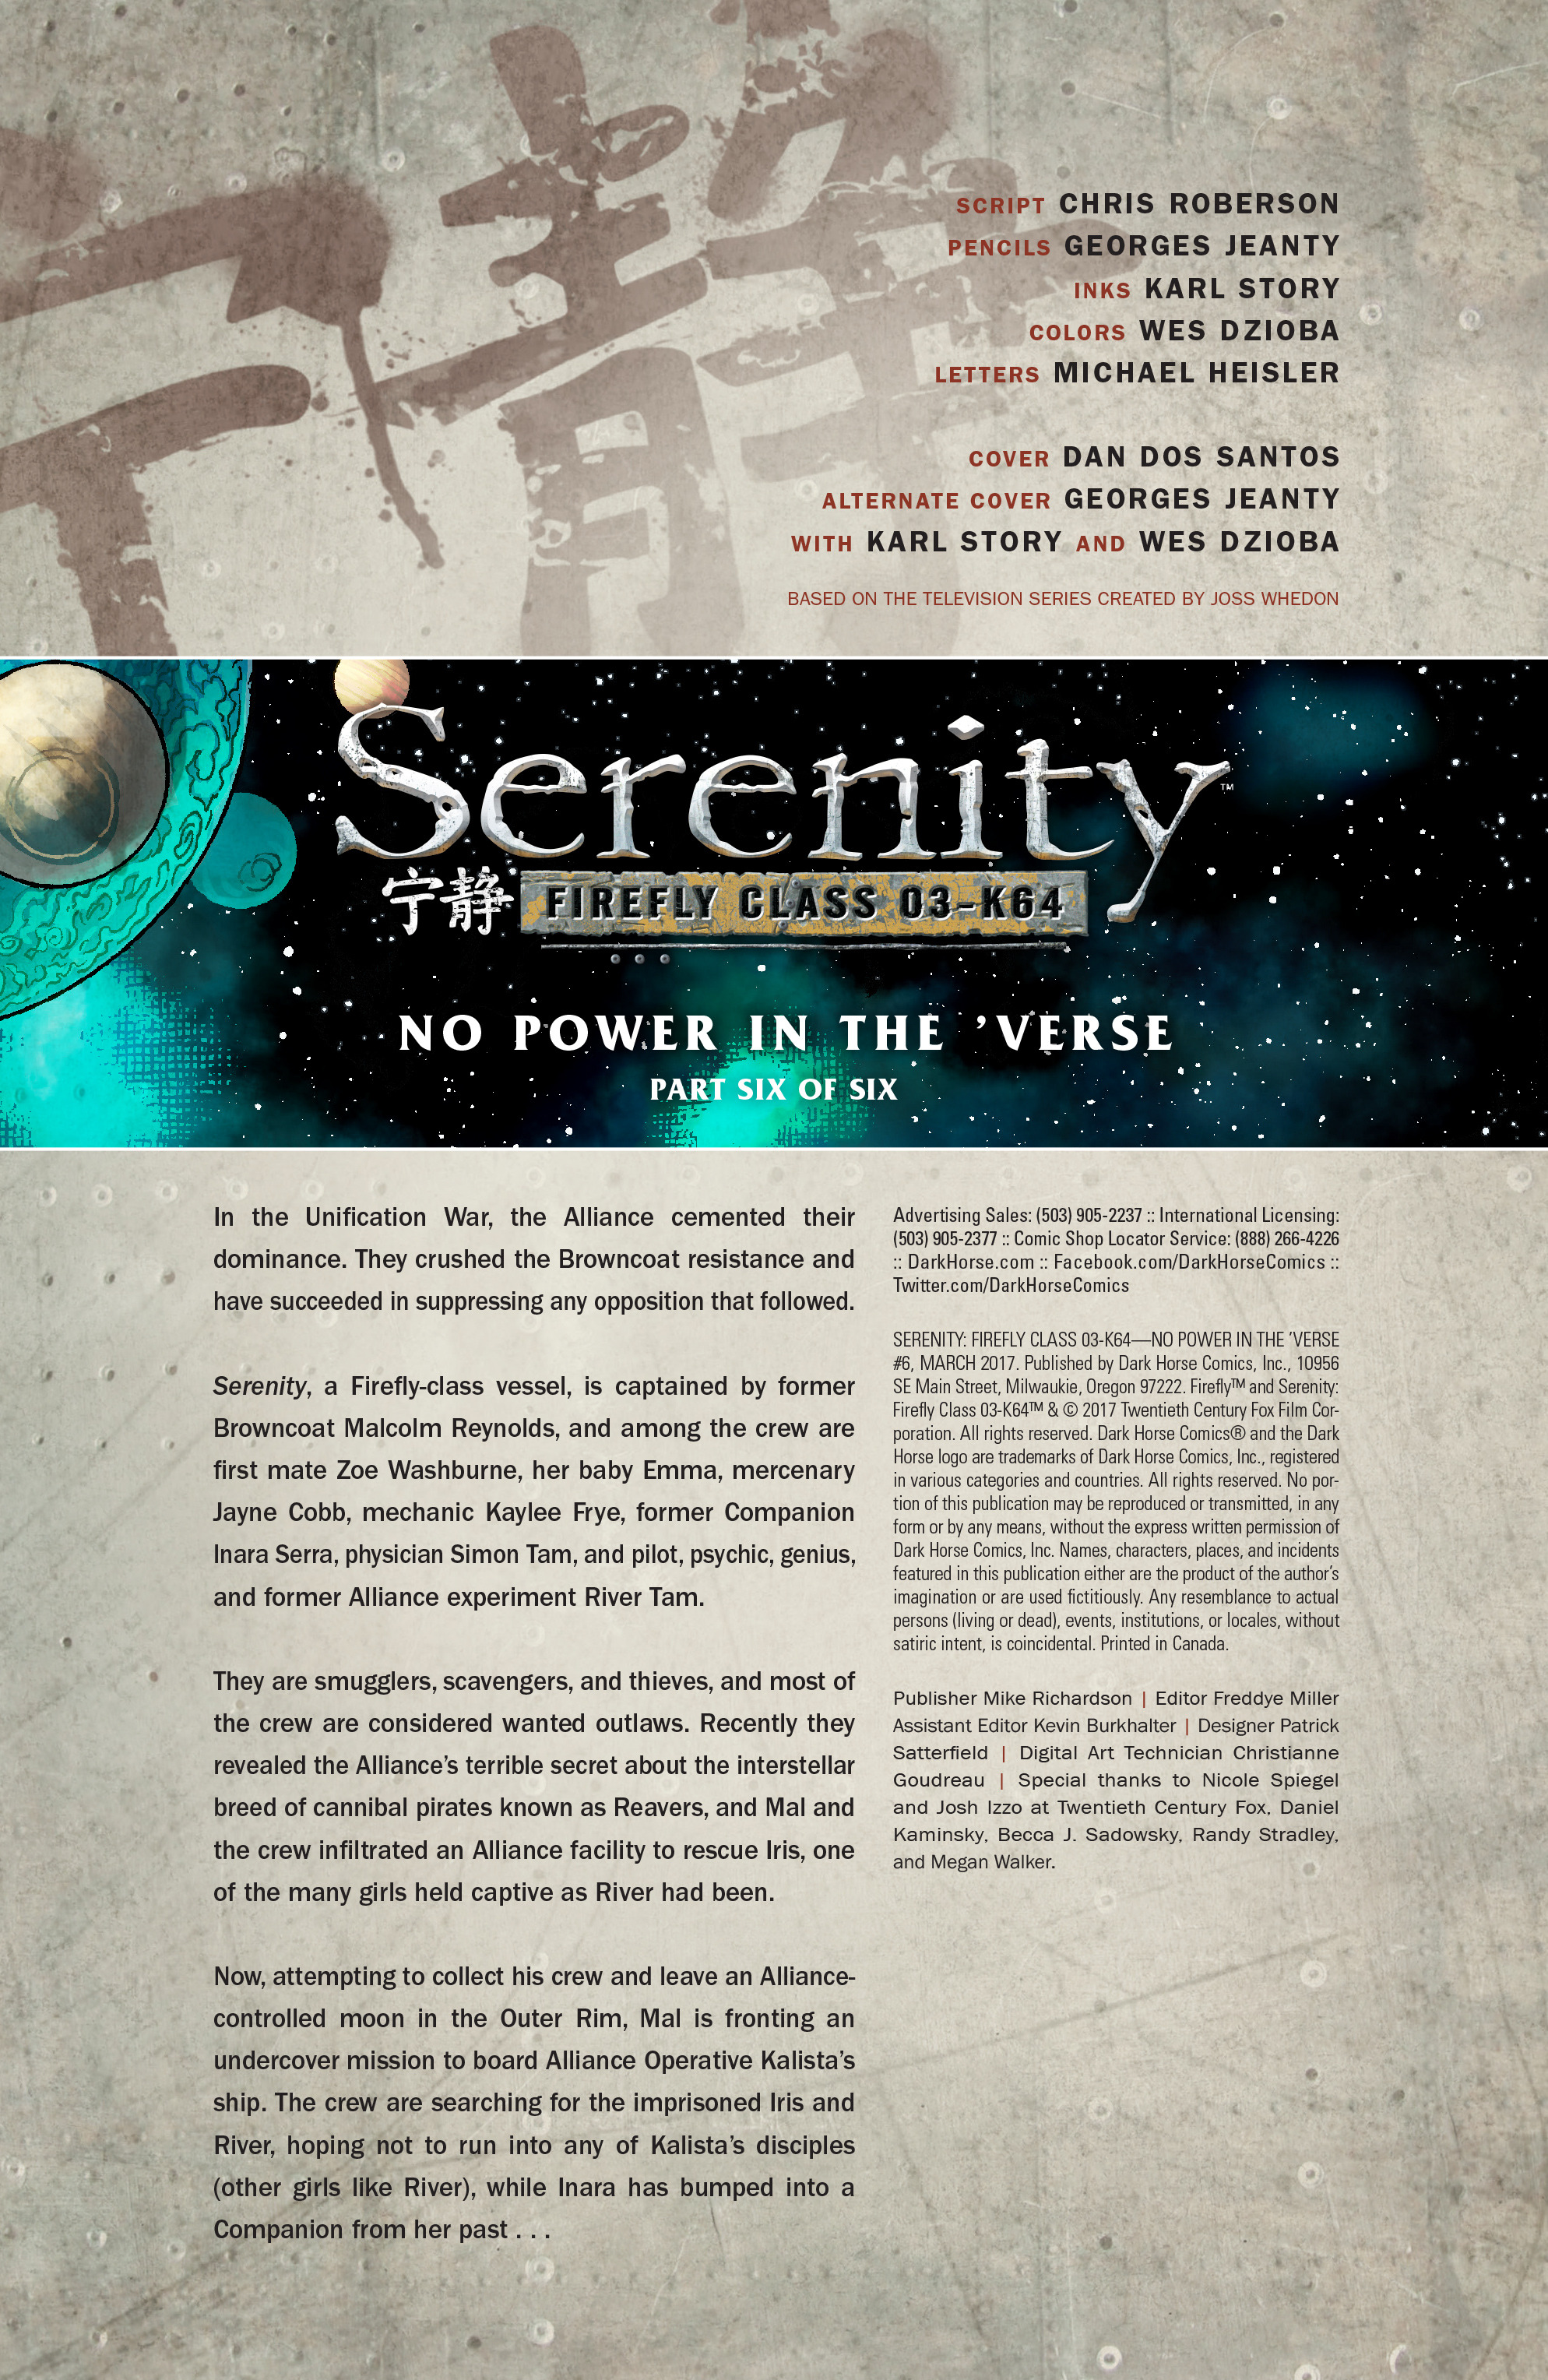 Read online Serenity: Firefly Class 03-K64 – No Power in the 'Verse comic -  Issue #6 - 3